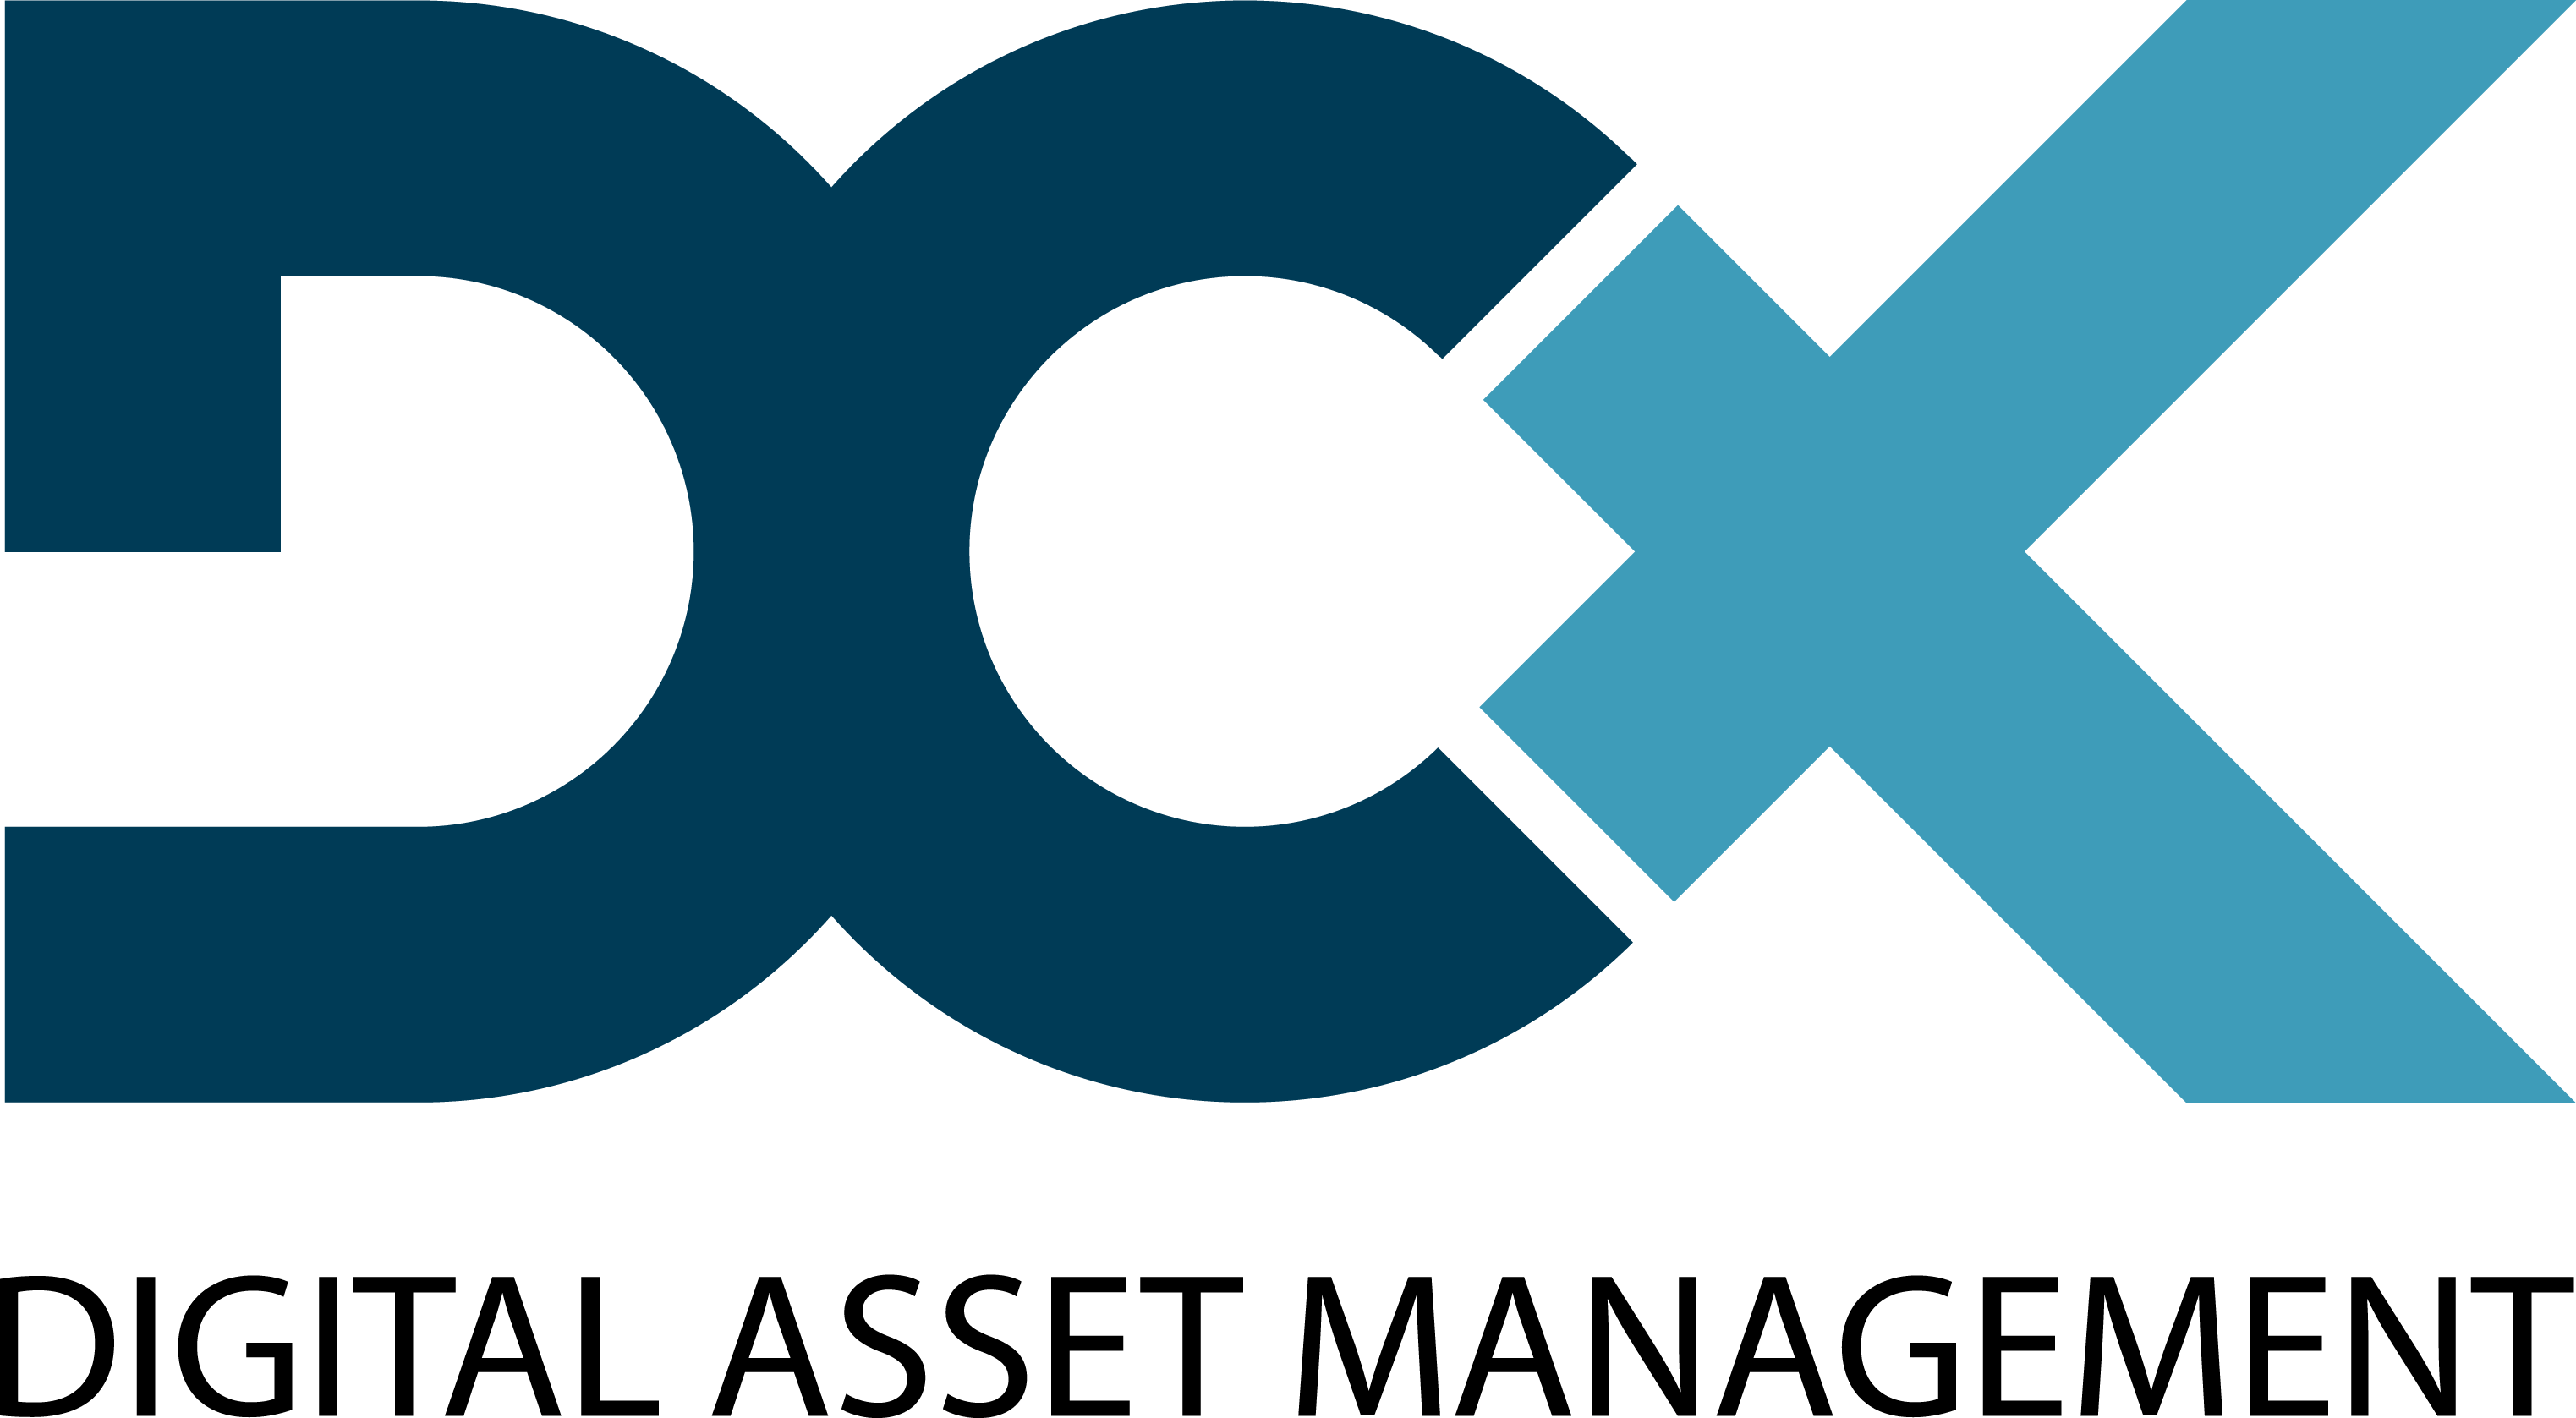 DC-X - Digital Collections